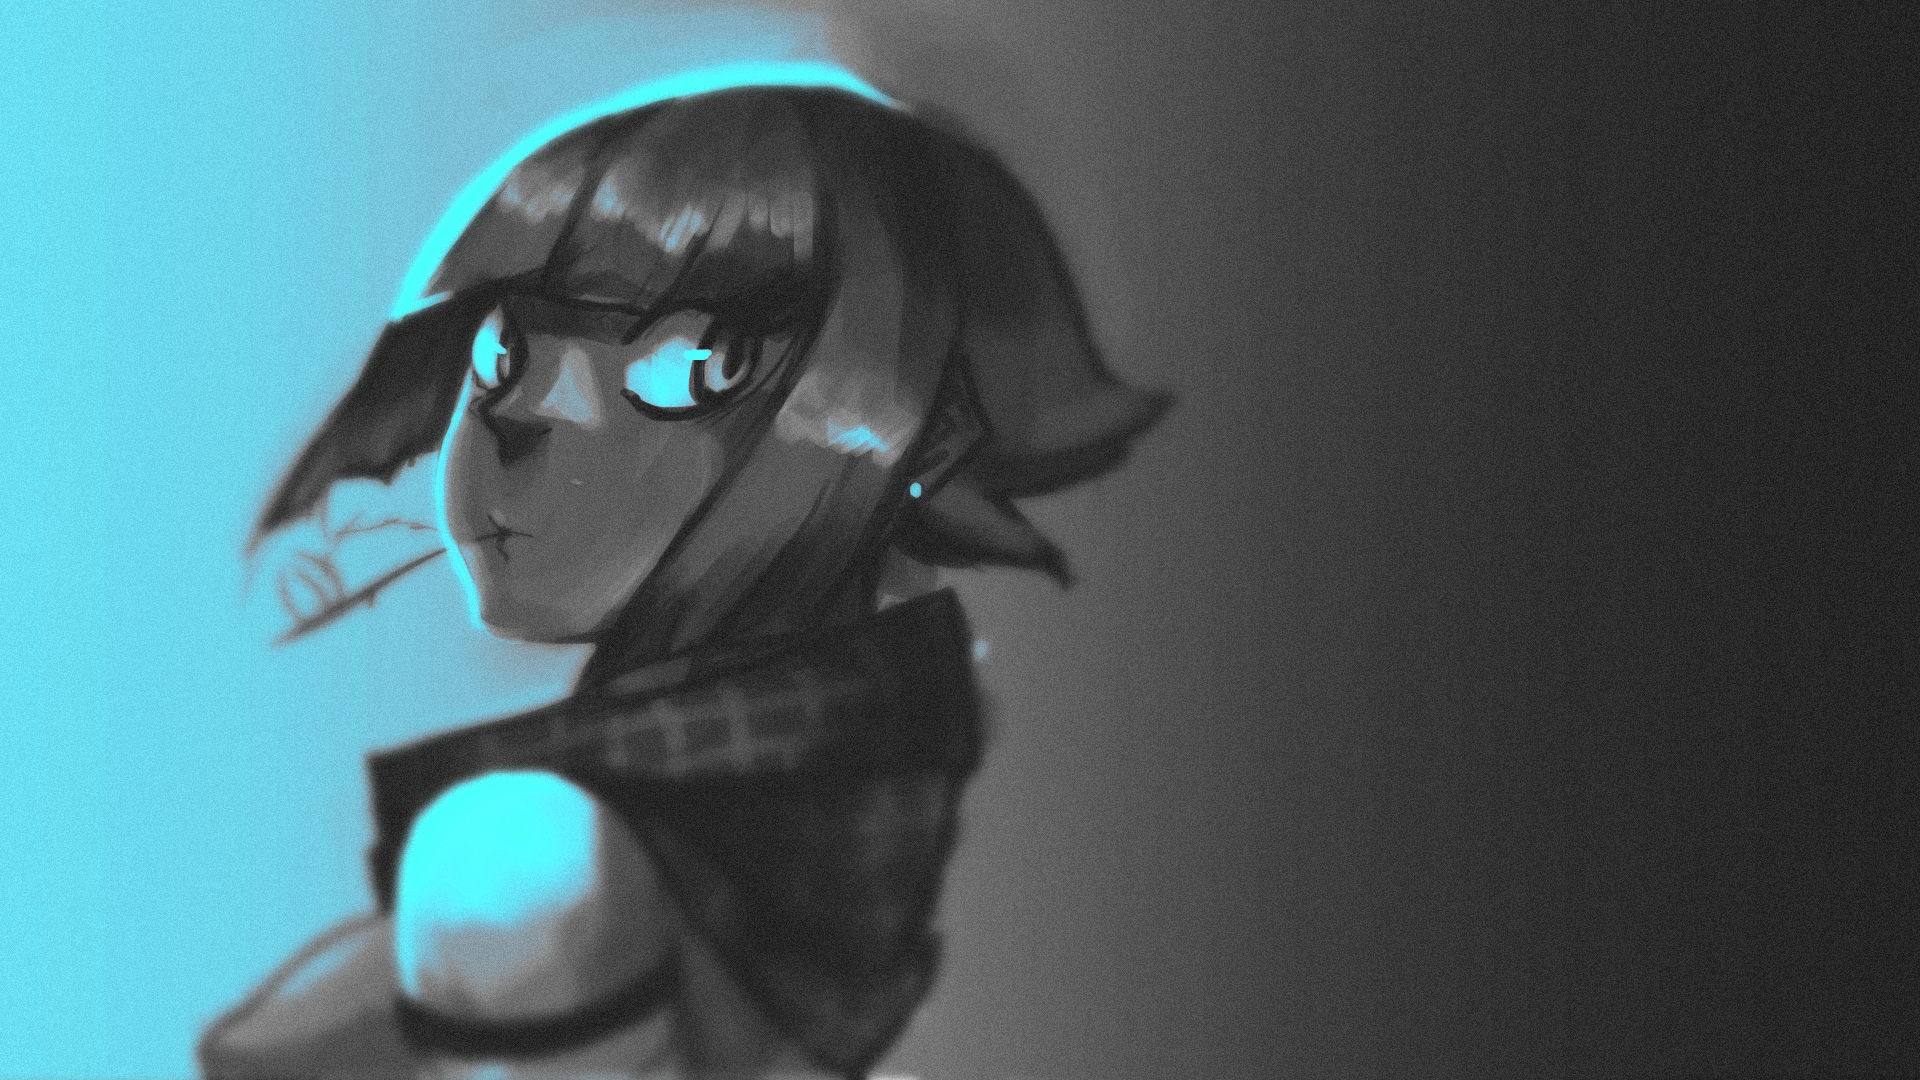 Random girl (Trying to get used to photoshop)